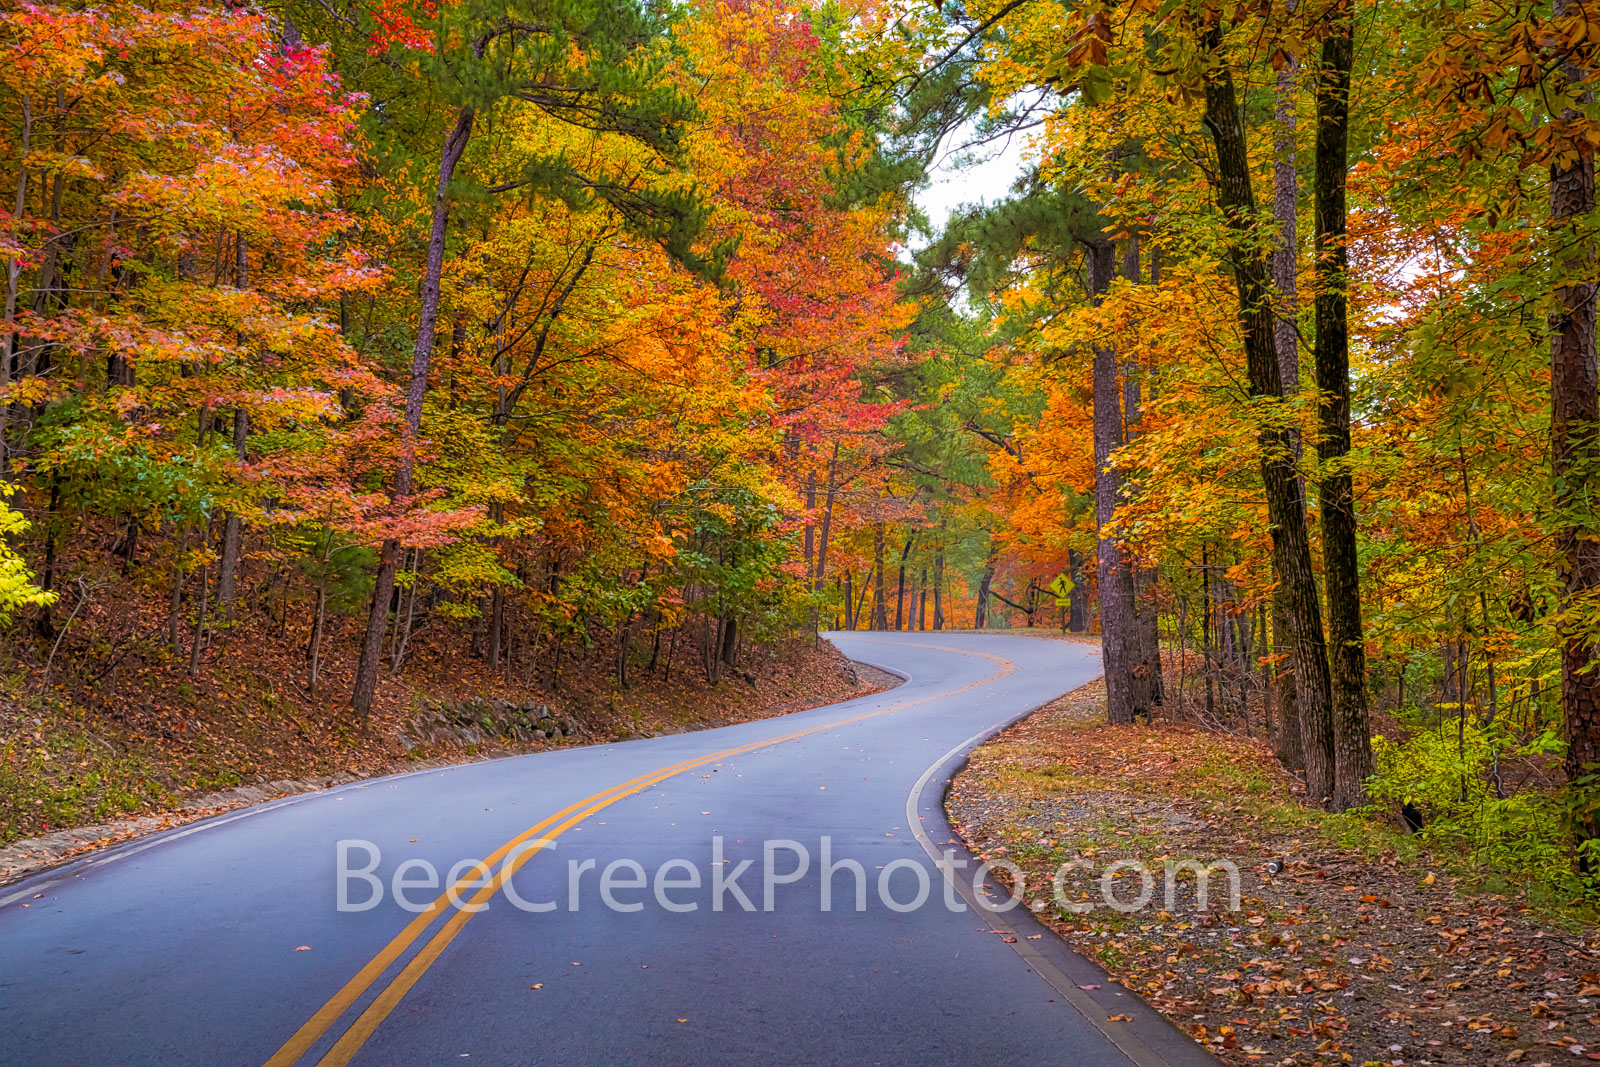 fall, autumn, landscape, yellow, orange, pine, cypress, trees, shades, yellow, orange, rust, colors, tower mountain, road, arkansas, national, forest, october, curves, sun light, tree line road, pines, photo